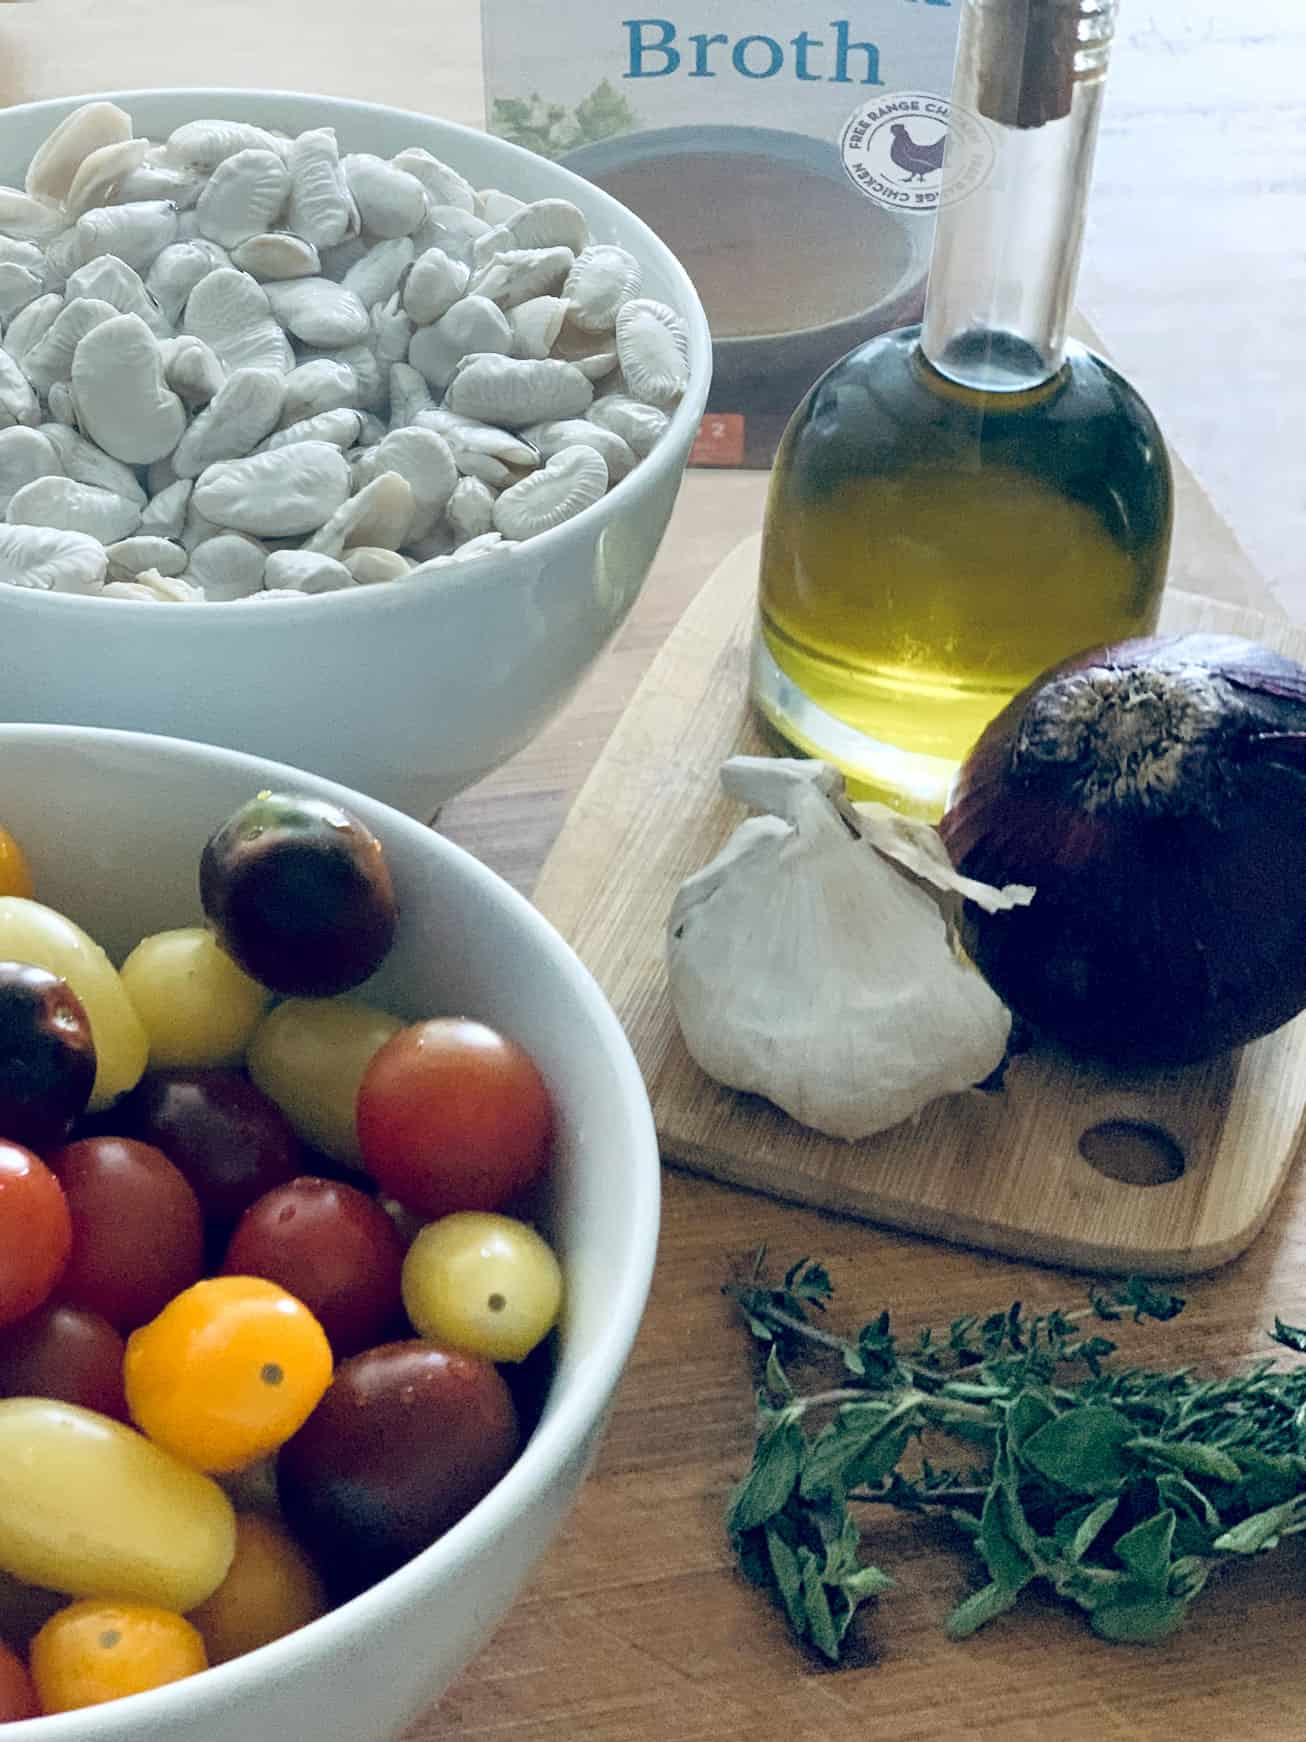 A bowl full of multi color cherry tomatoes, a head of garlic, a red onion, a bottle of olive oil, a bowl with giant beans, a box of chicken broth at the back and some fresh herbs at the front.